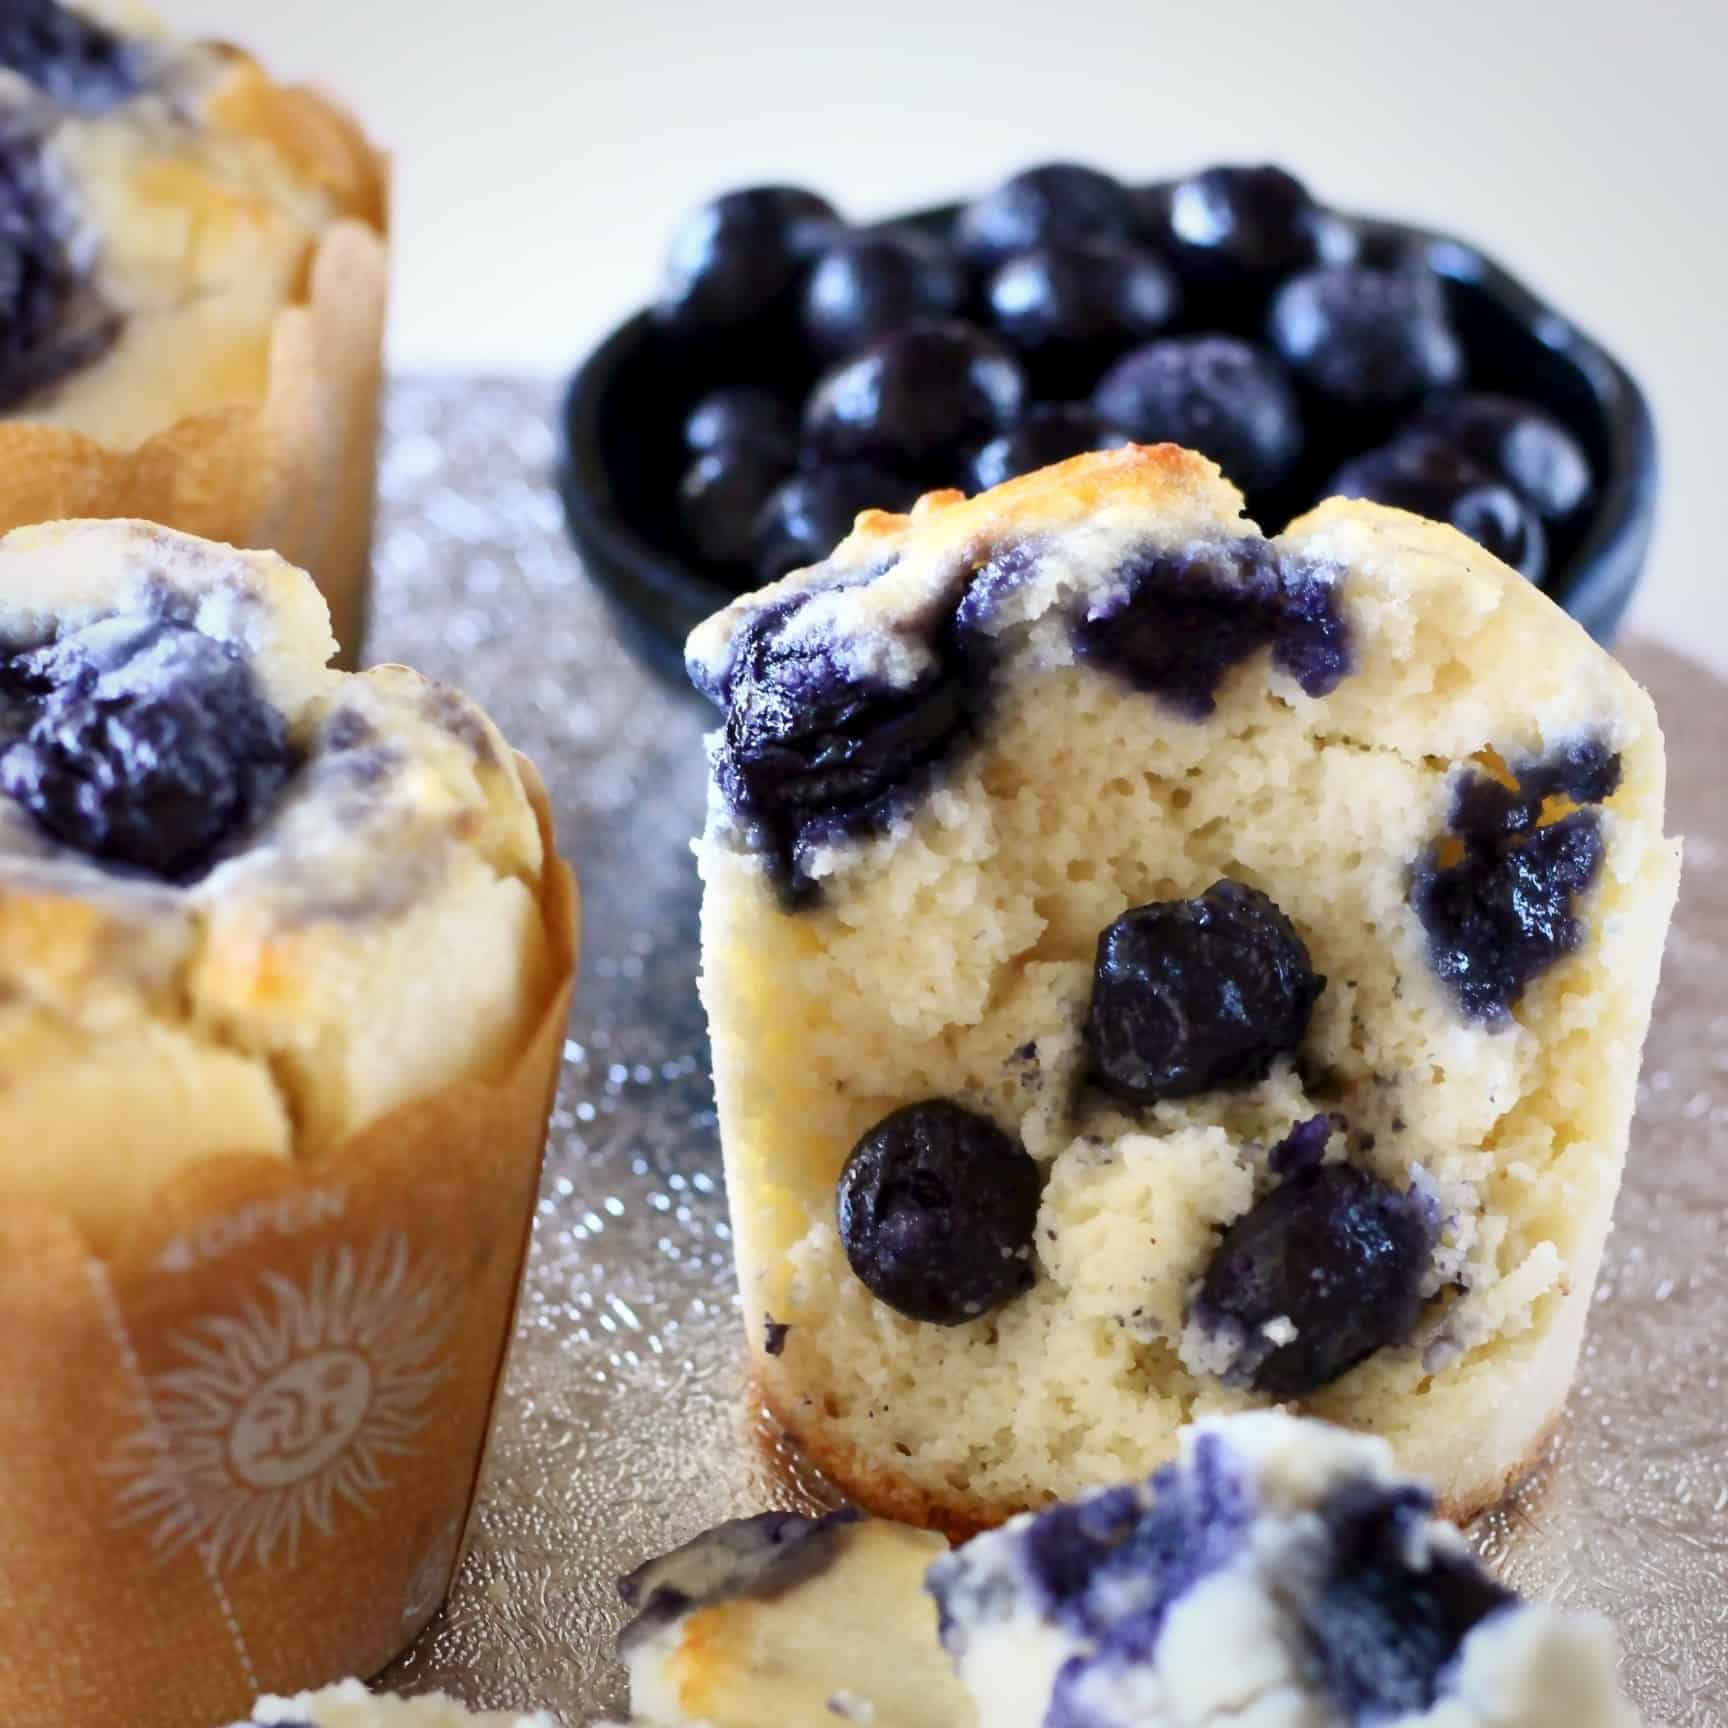 These Gluten Free Vegan Blueberry Muffins Are Moist And Fluffy